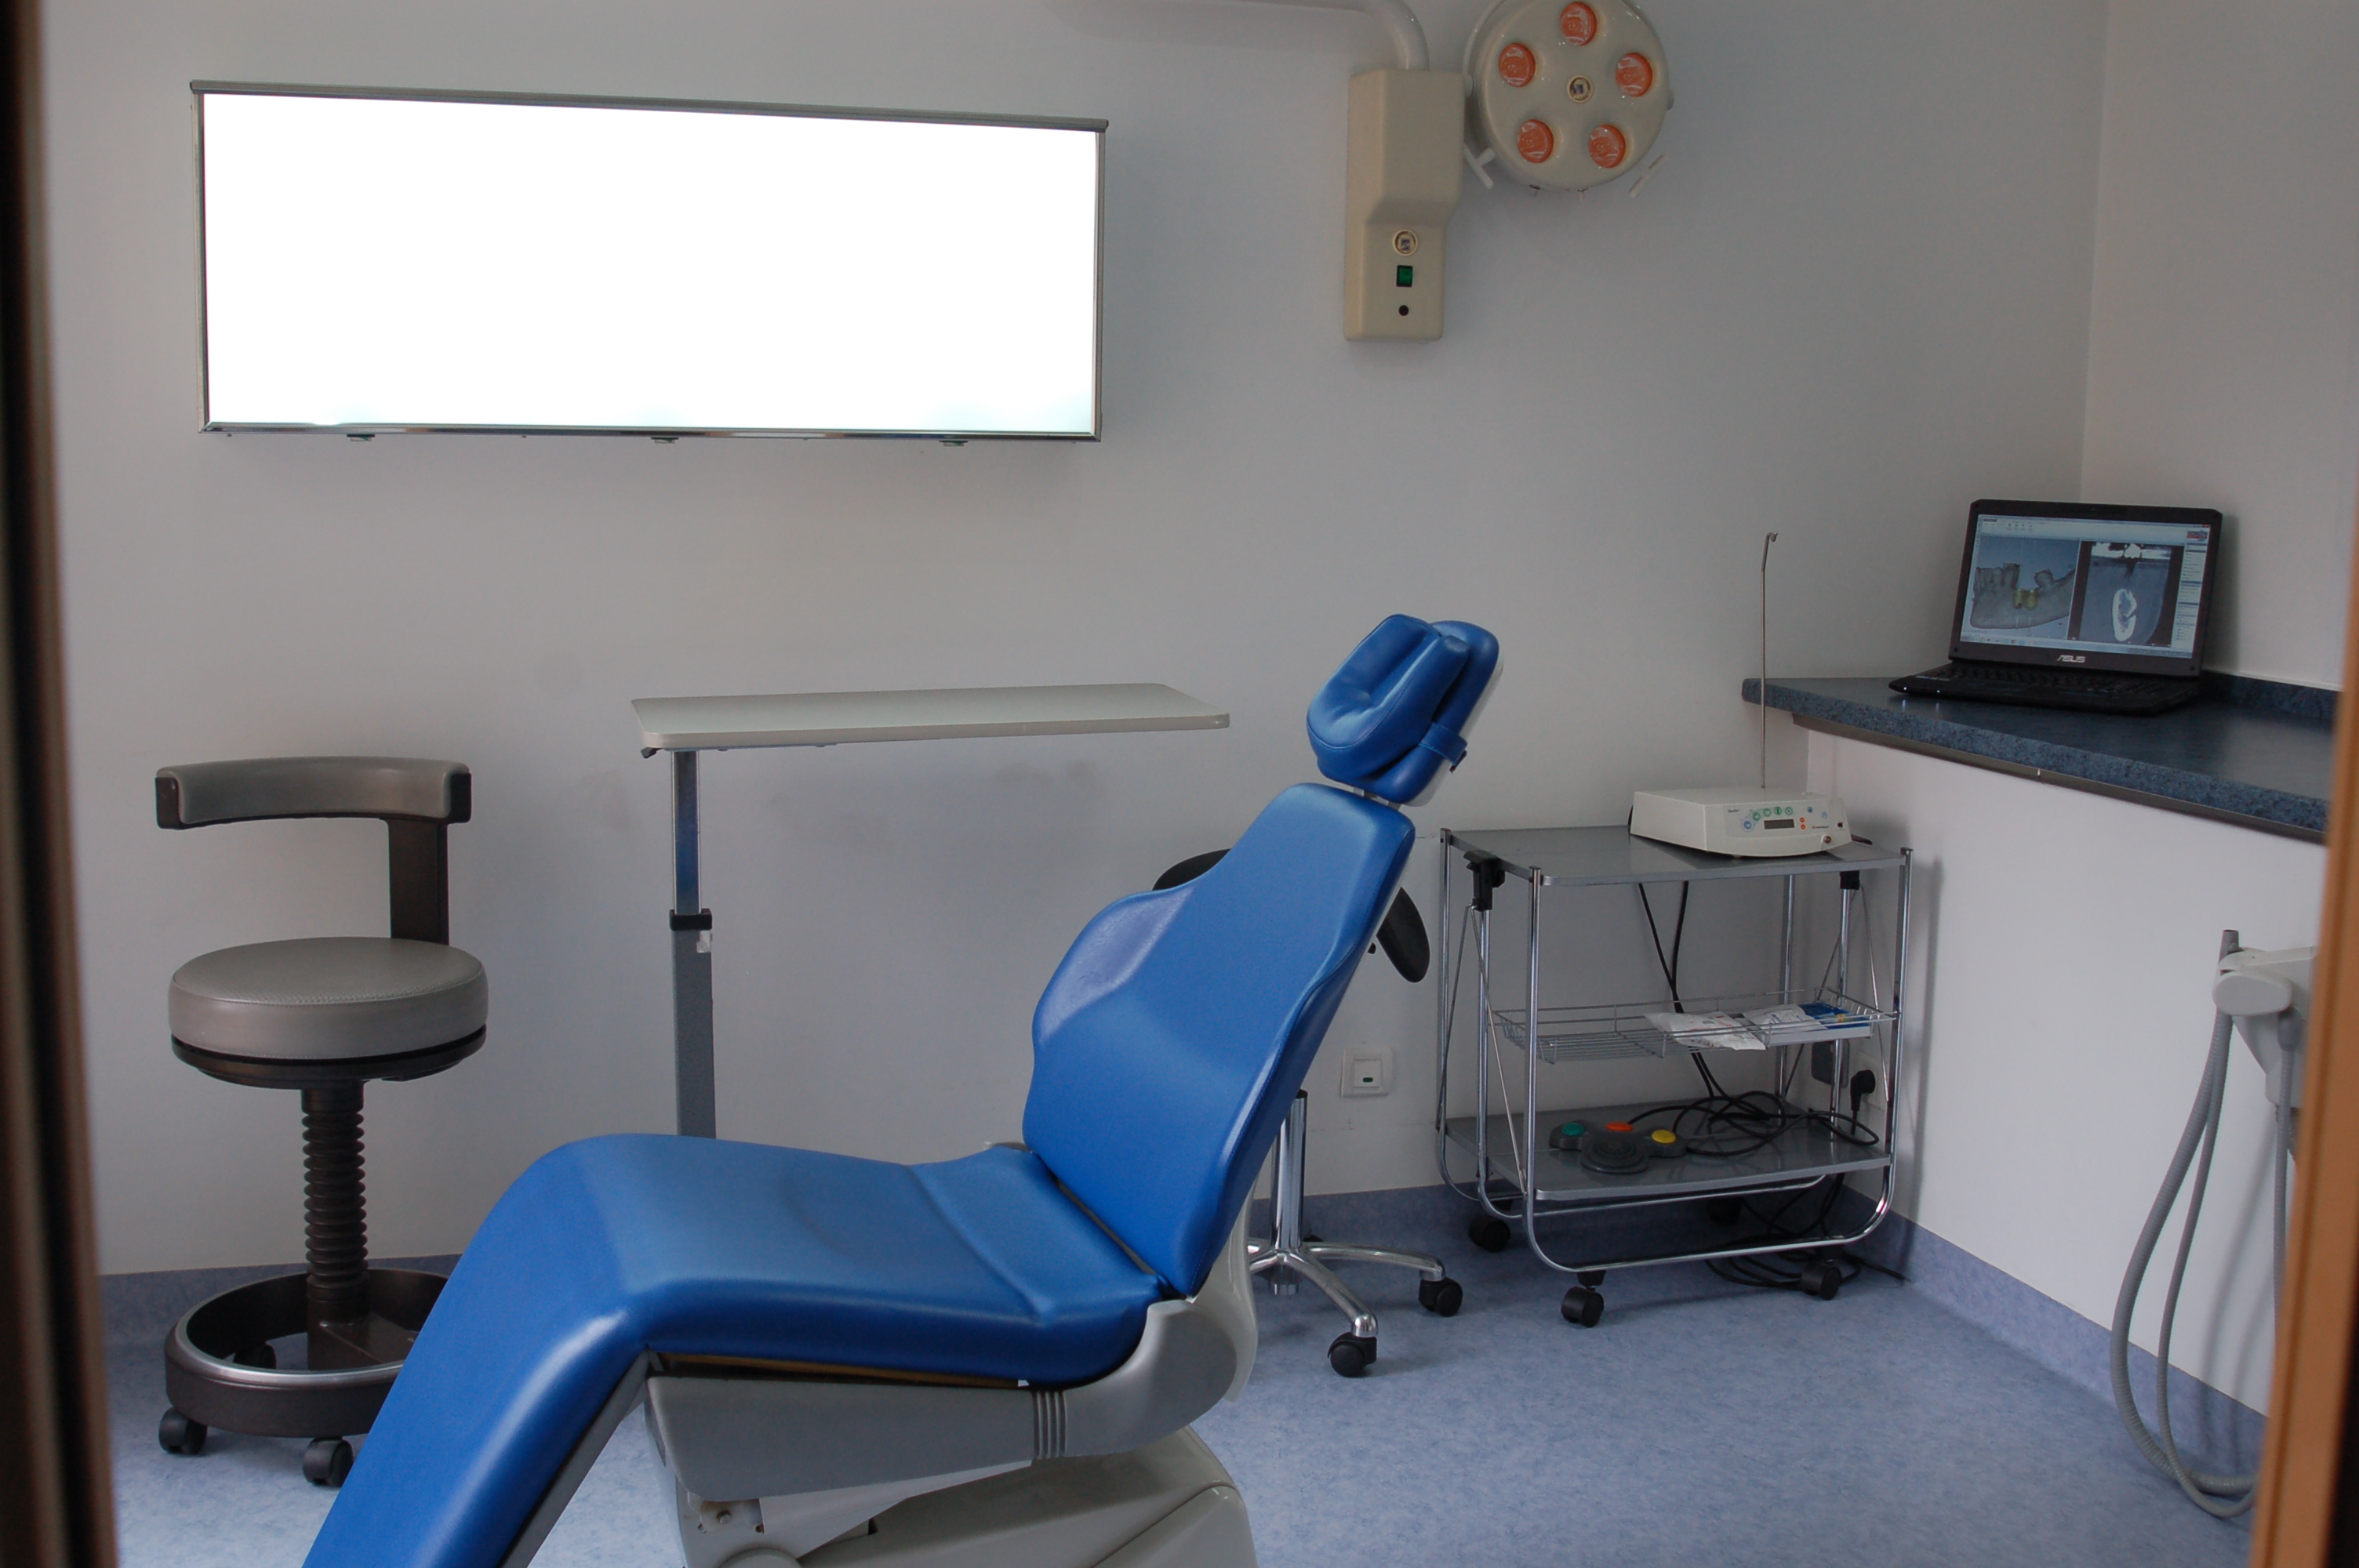 Espace chirurgie implant dentaire